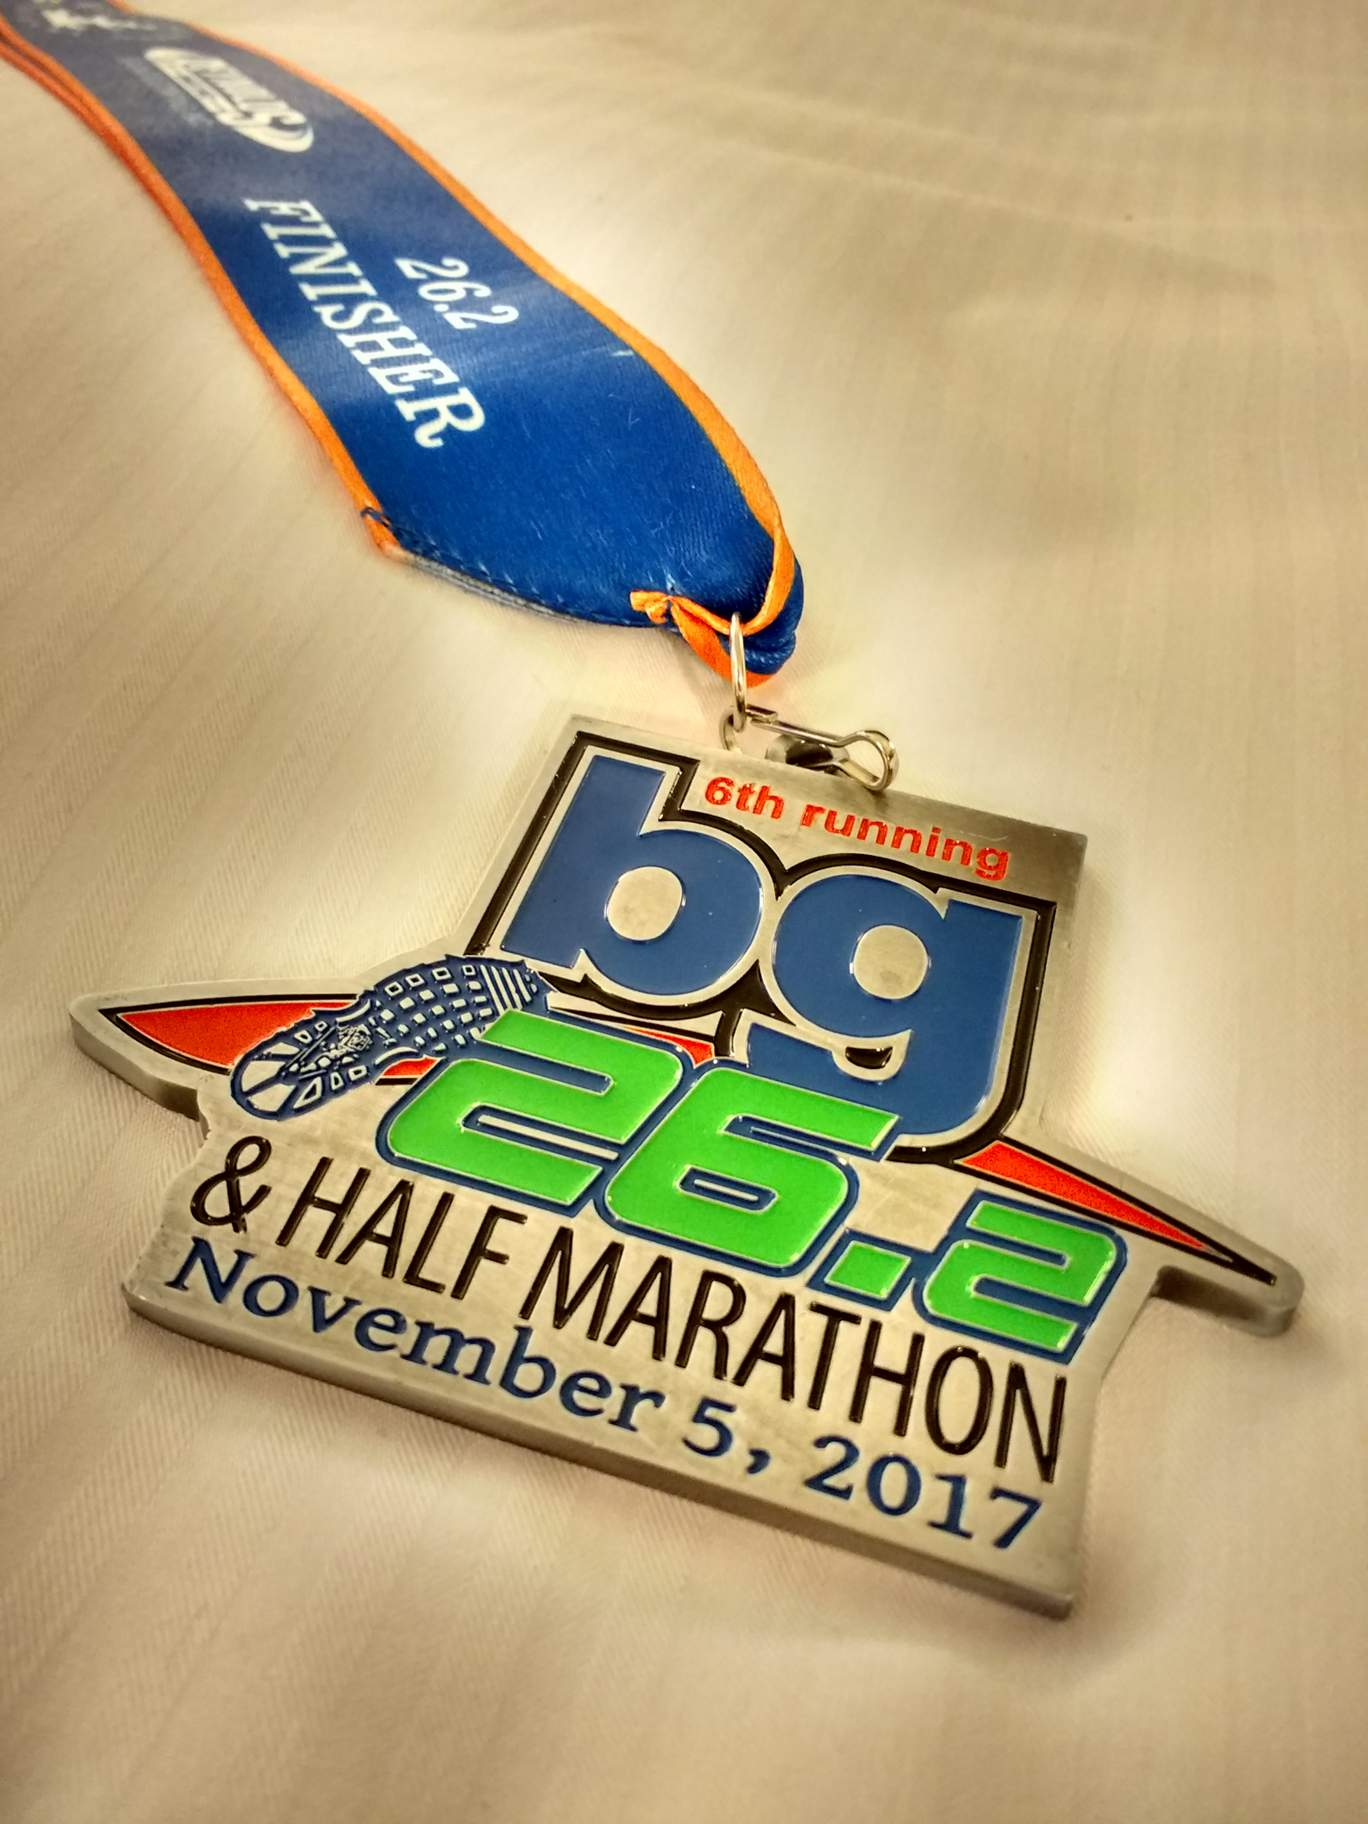 The medal for the 2017 Bowling Green Marathon (BG 26.2) and Half Marathon.